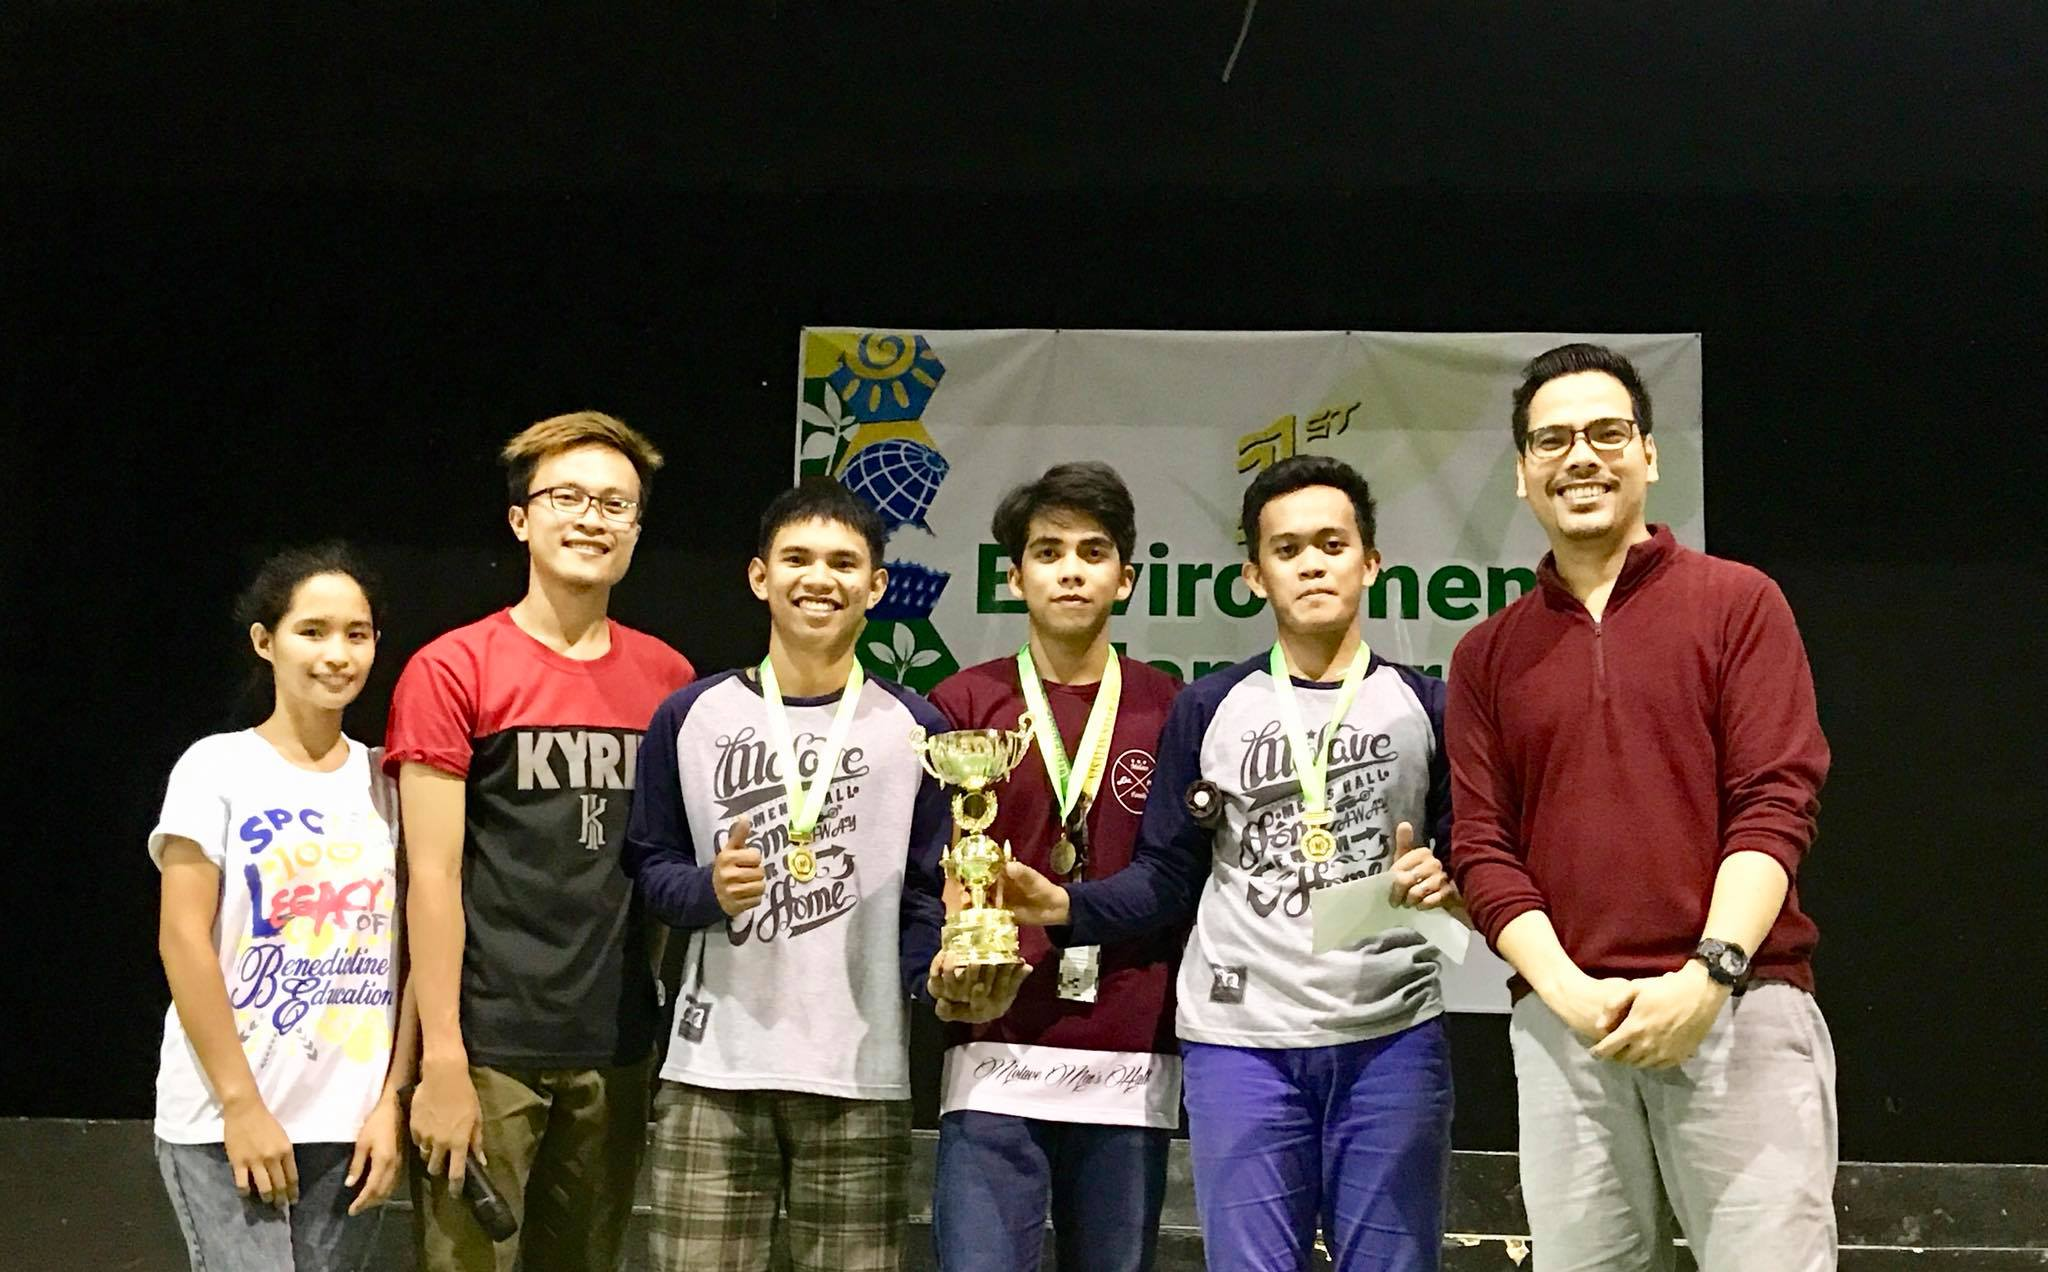 CHAMPS. UISB winners' Angelo Astudillo, Ayron Garrido and Ruel Lamberte poses with quiz show master Derek Alviola (right corner) and UISB Pres. Junrey Goles (2nd from the left) after receiving their prize.